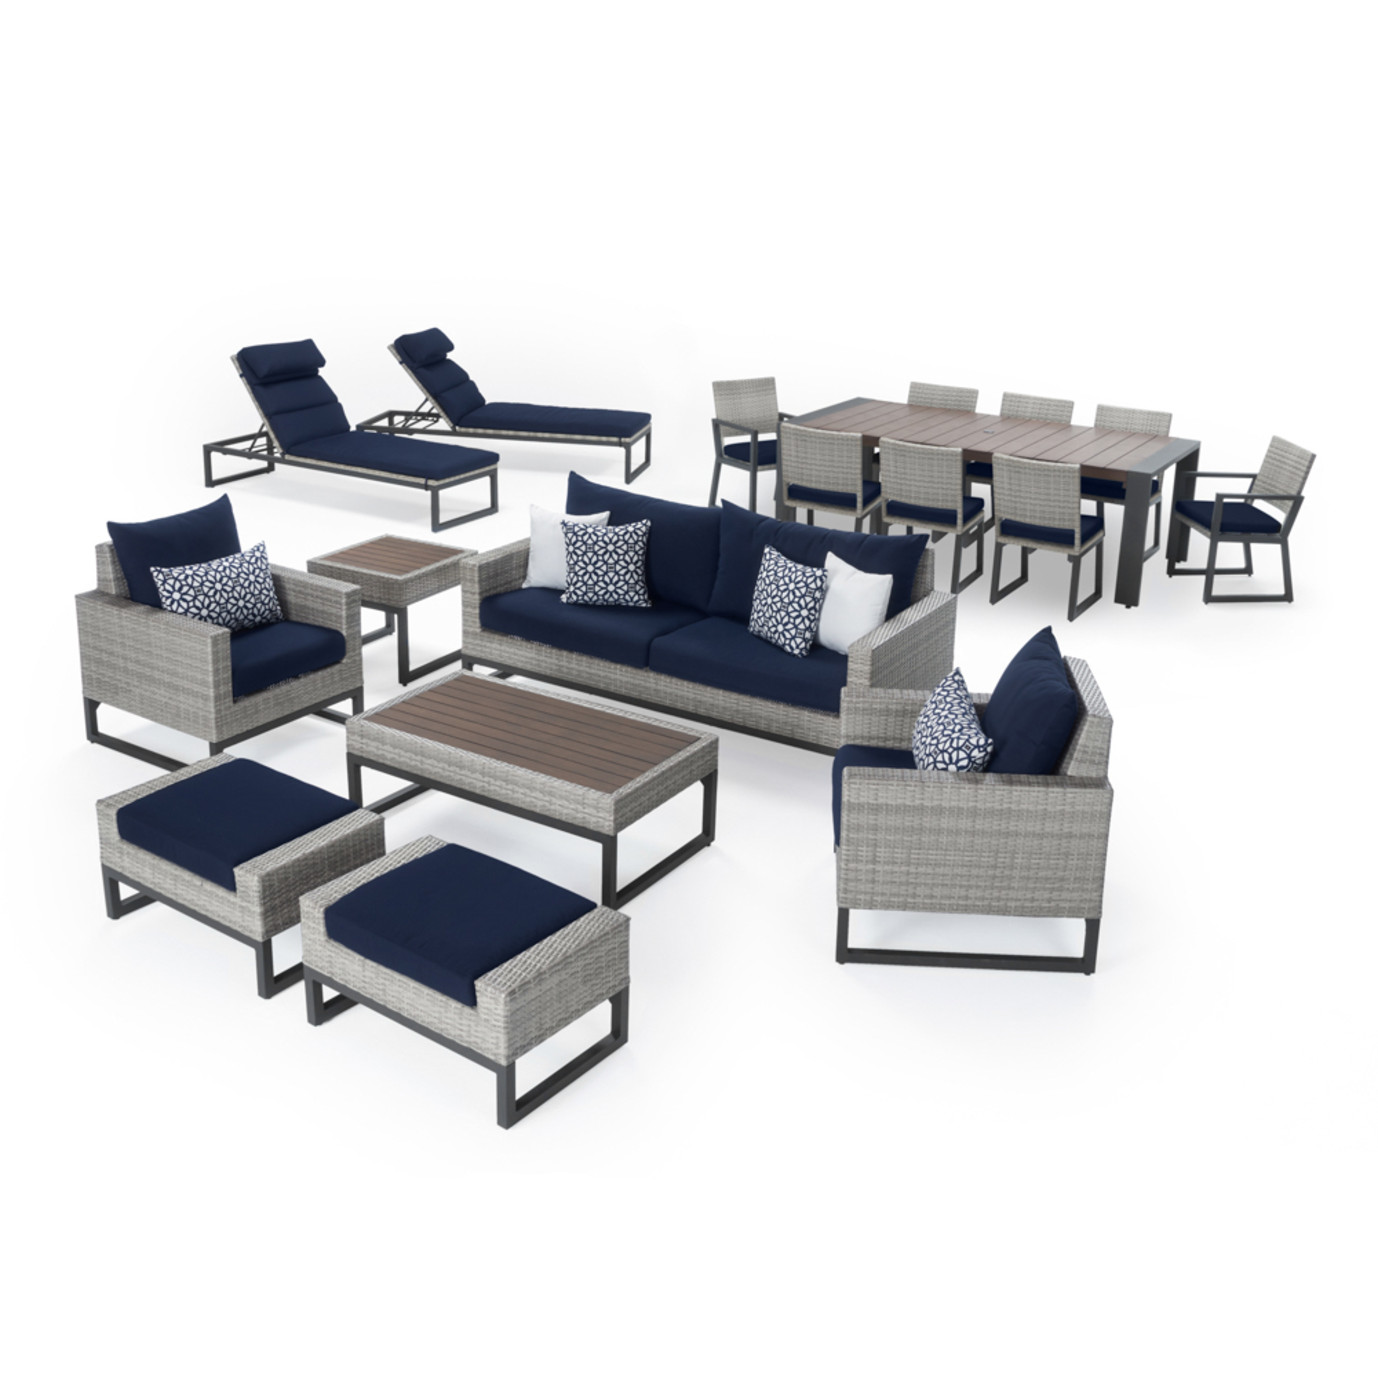 Milo™ Gray 18 Piece Estate Set - Navy Blue